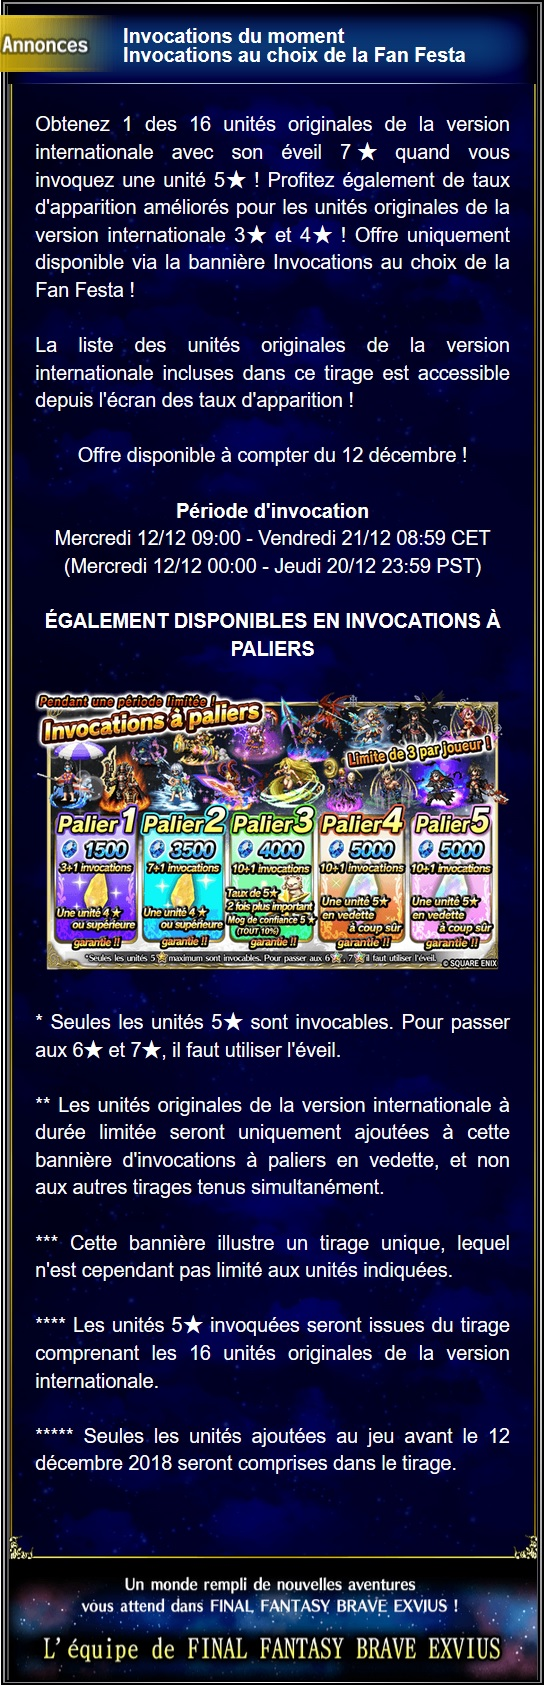 Invocations du moment - Invocations au choix de la Fan Festa - du 12/12 au 21/12/18 Captur76